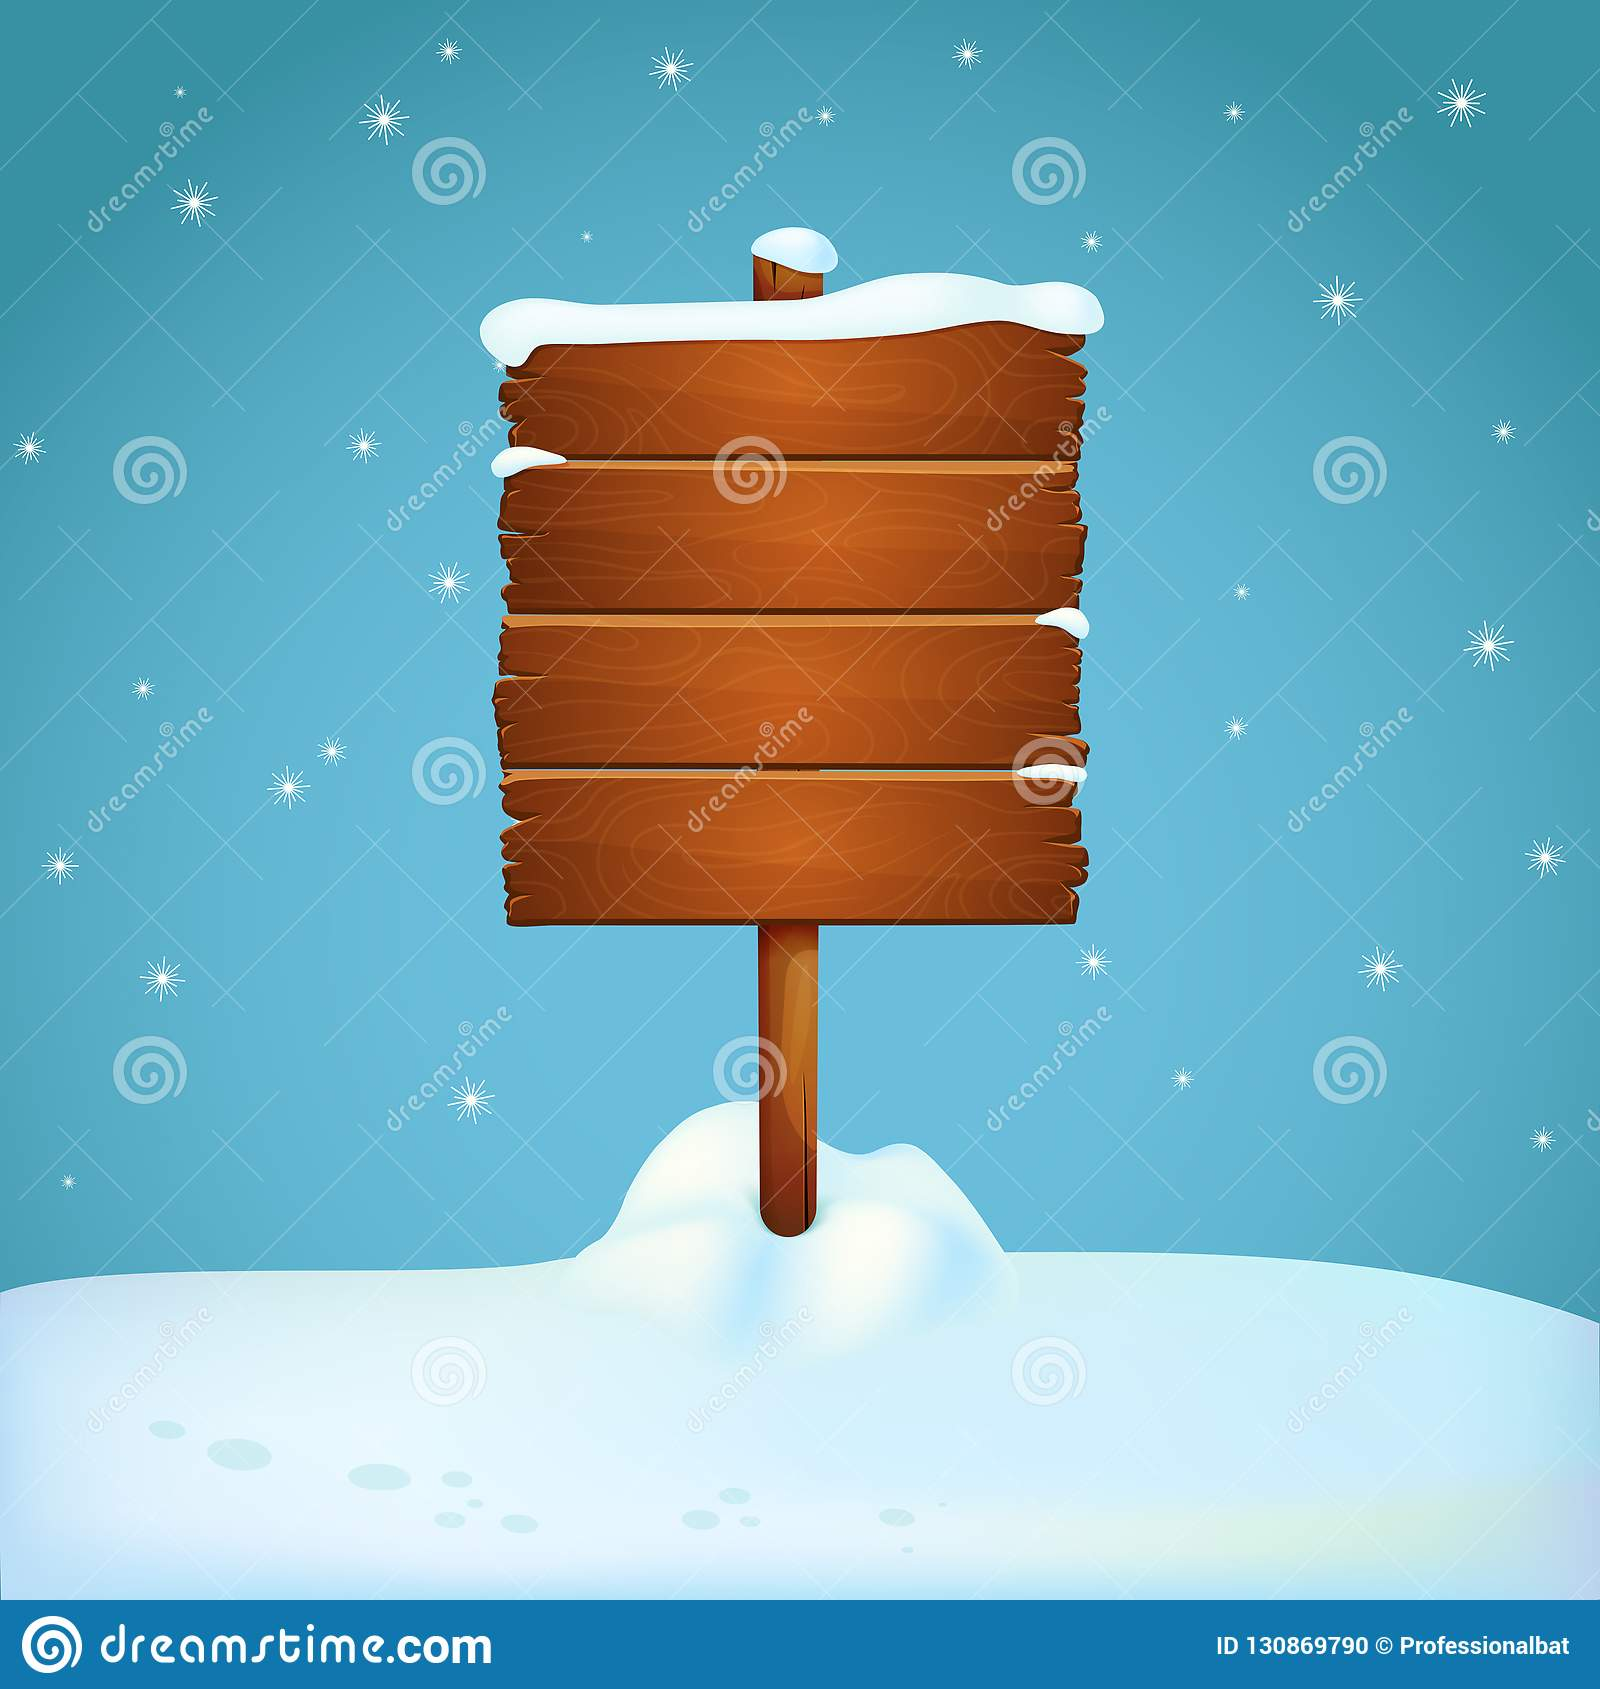 Large Wooden Signpost On The Snowy Ground With Falling Snowflakes